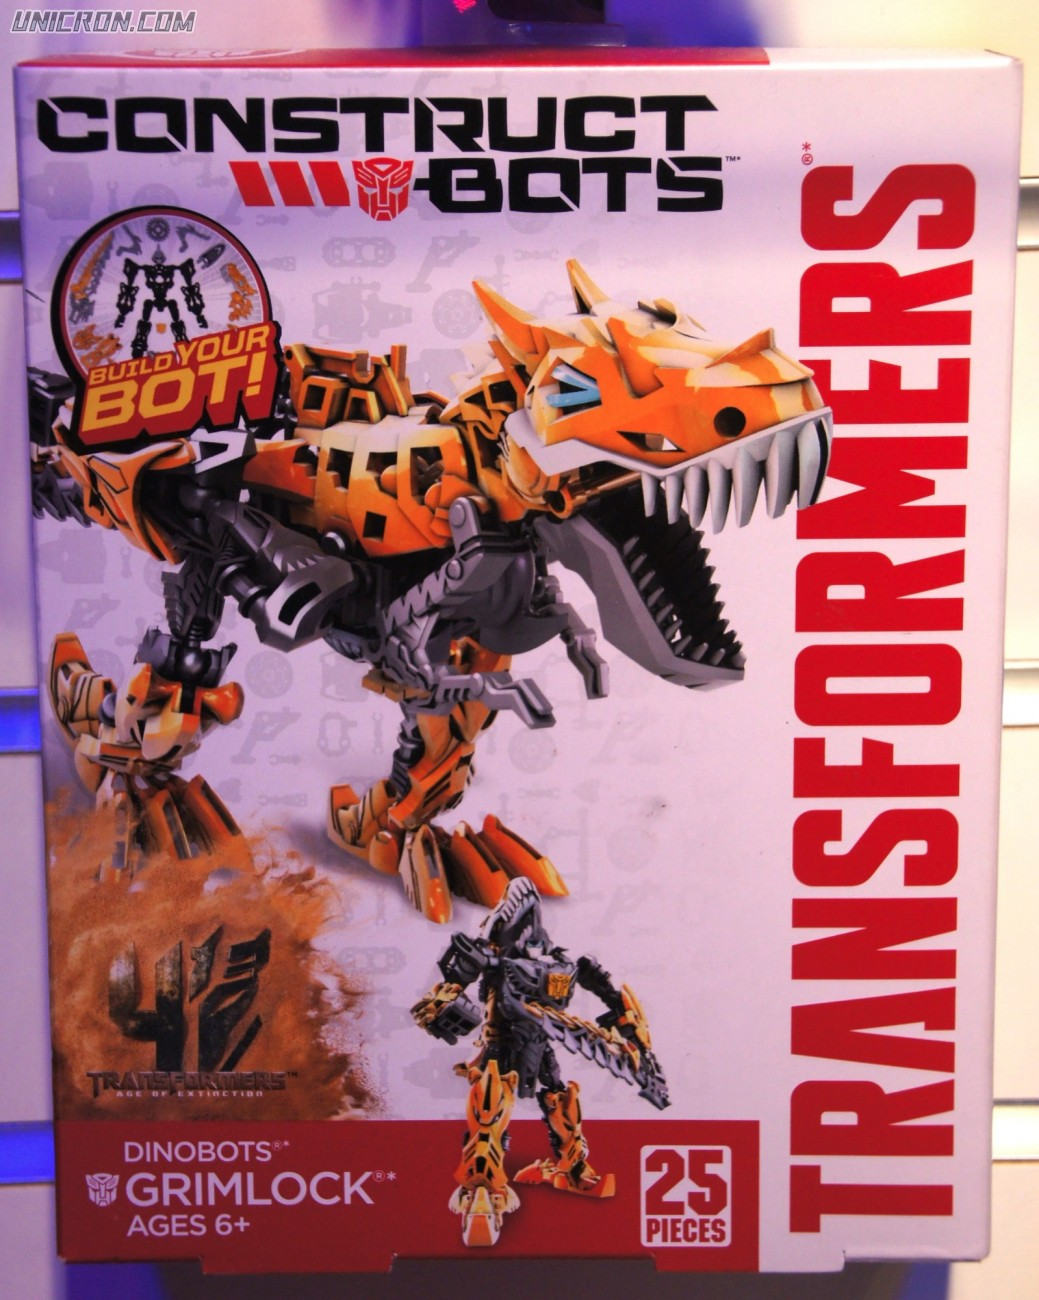 Transformers Construct-Bots Grimlock (Construct Bots) toy